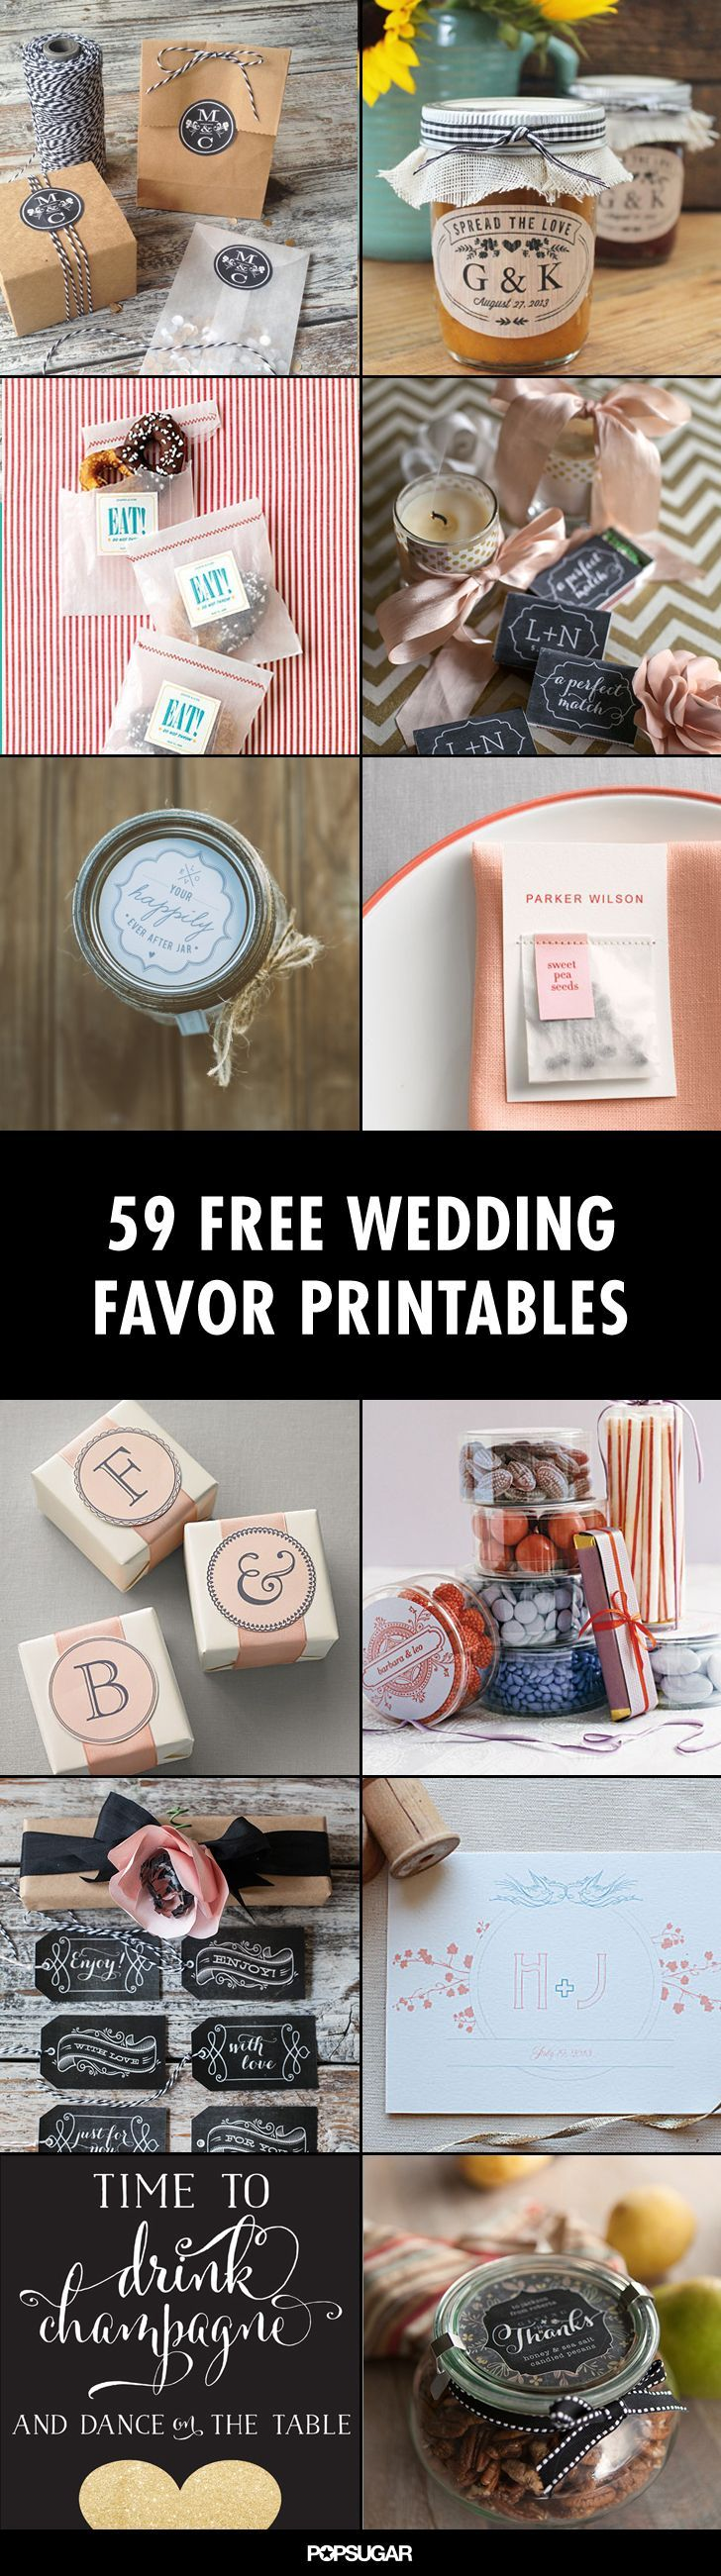 Give your DIY wedding favors a finishing touch with these beautiful wedding favor printables!